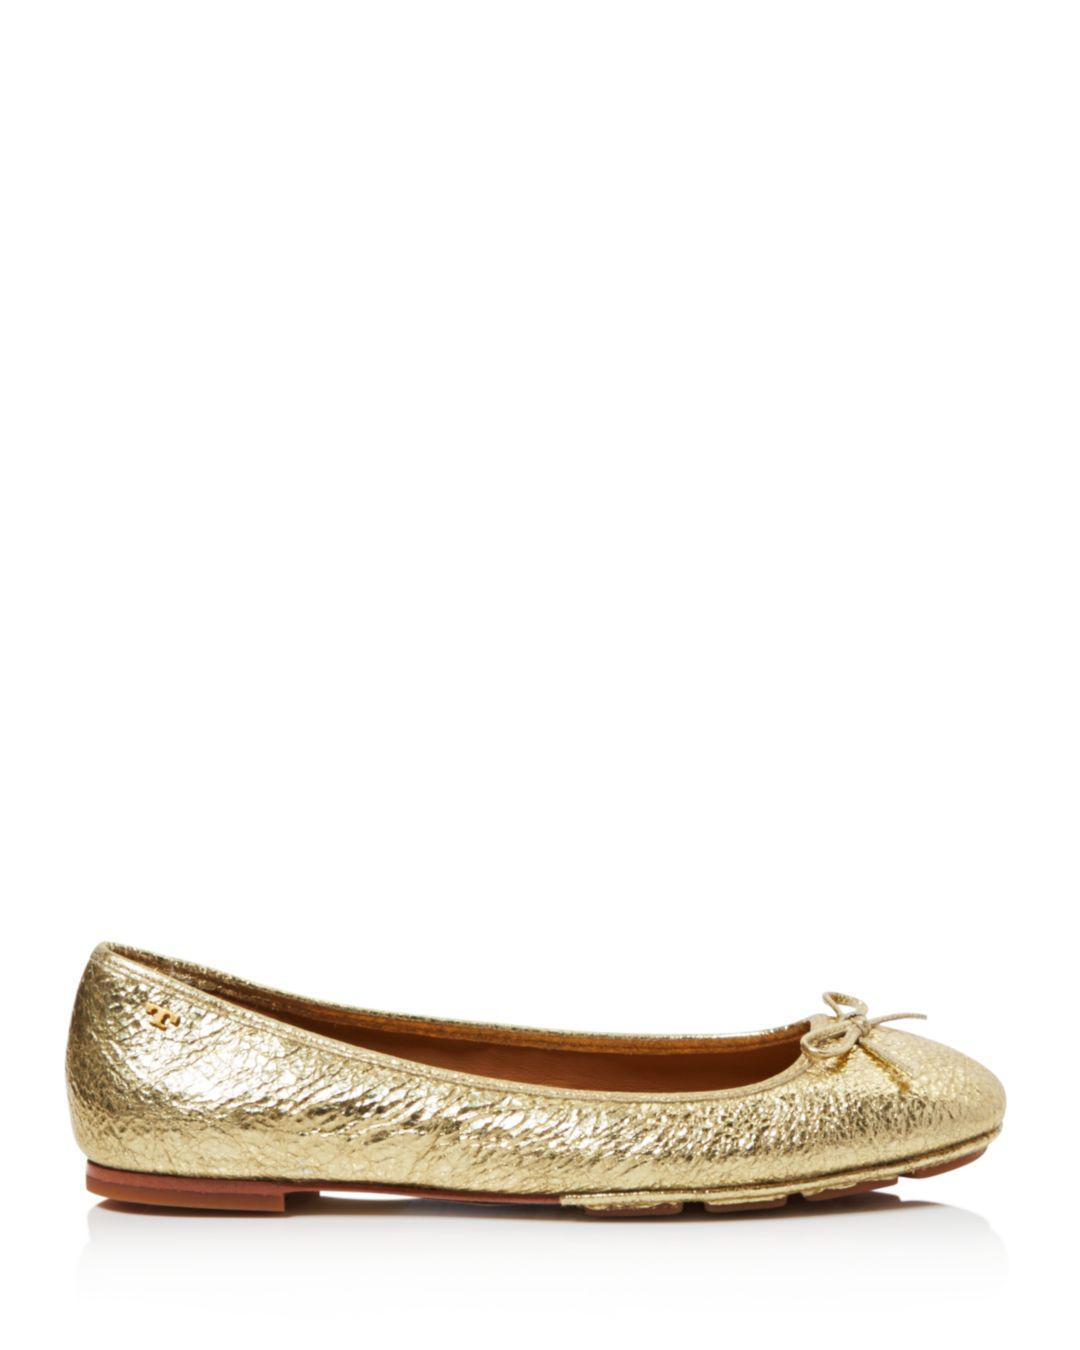 c4b39bde5 Tory Burch Women s Laila Leather Driver Ballet Flats - Save  34.14634146341463% - Lyst